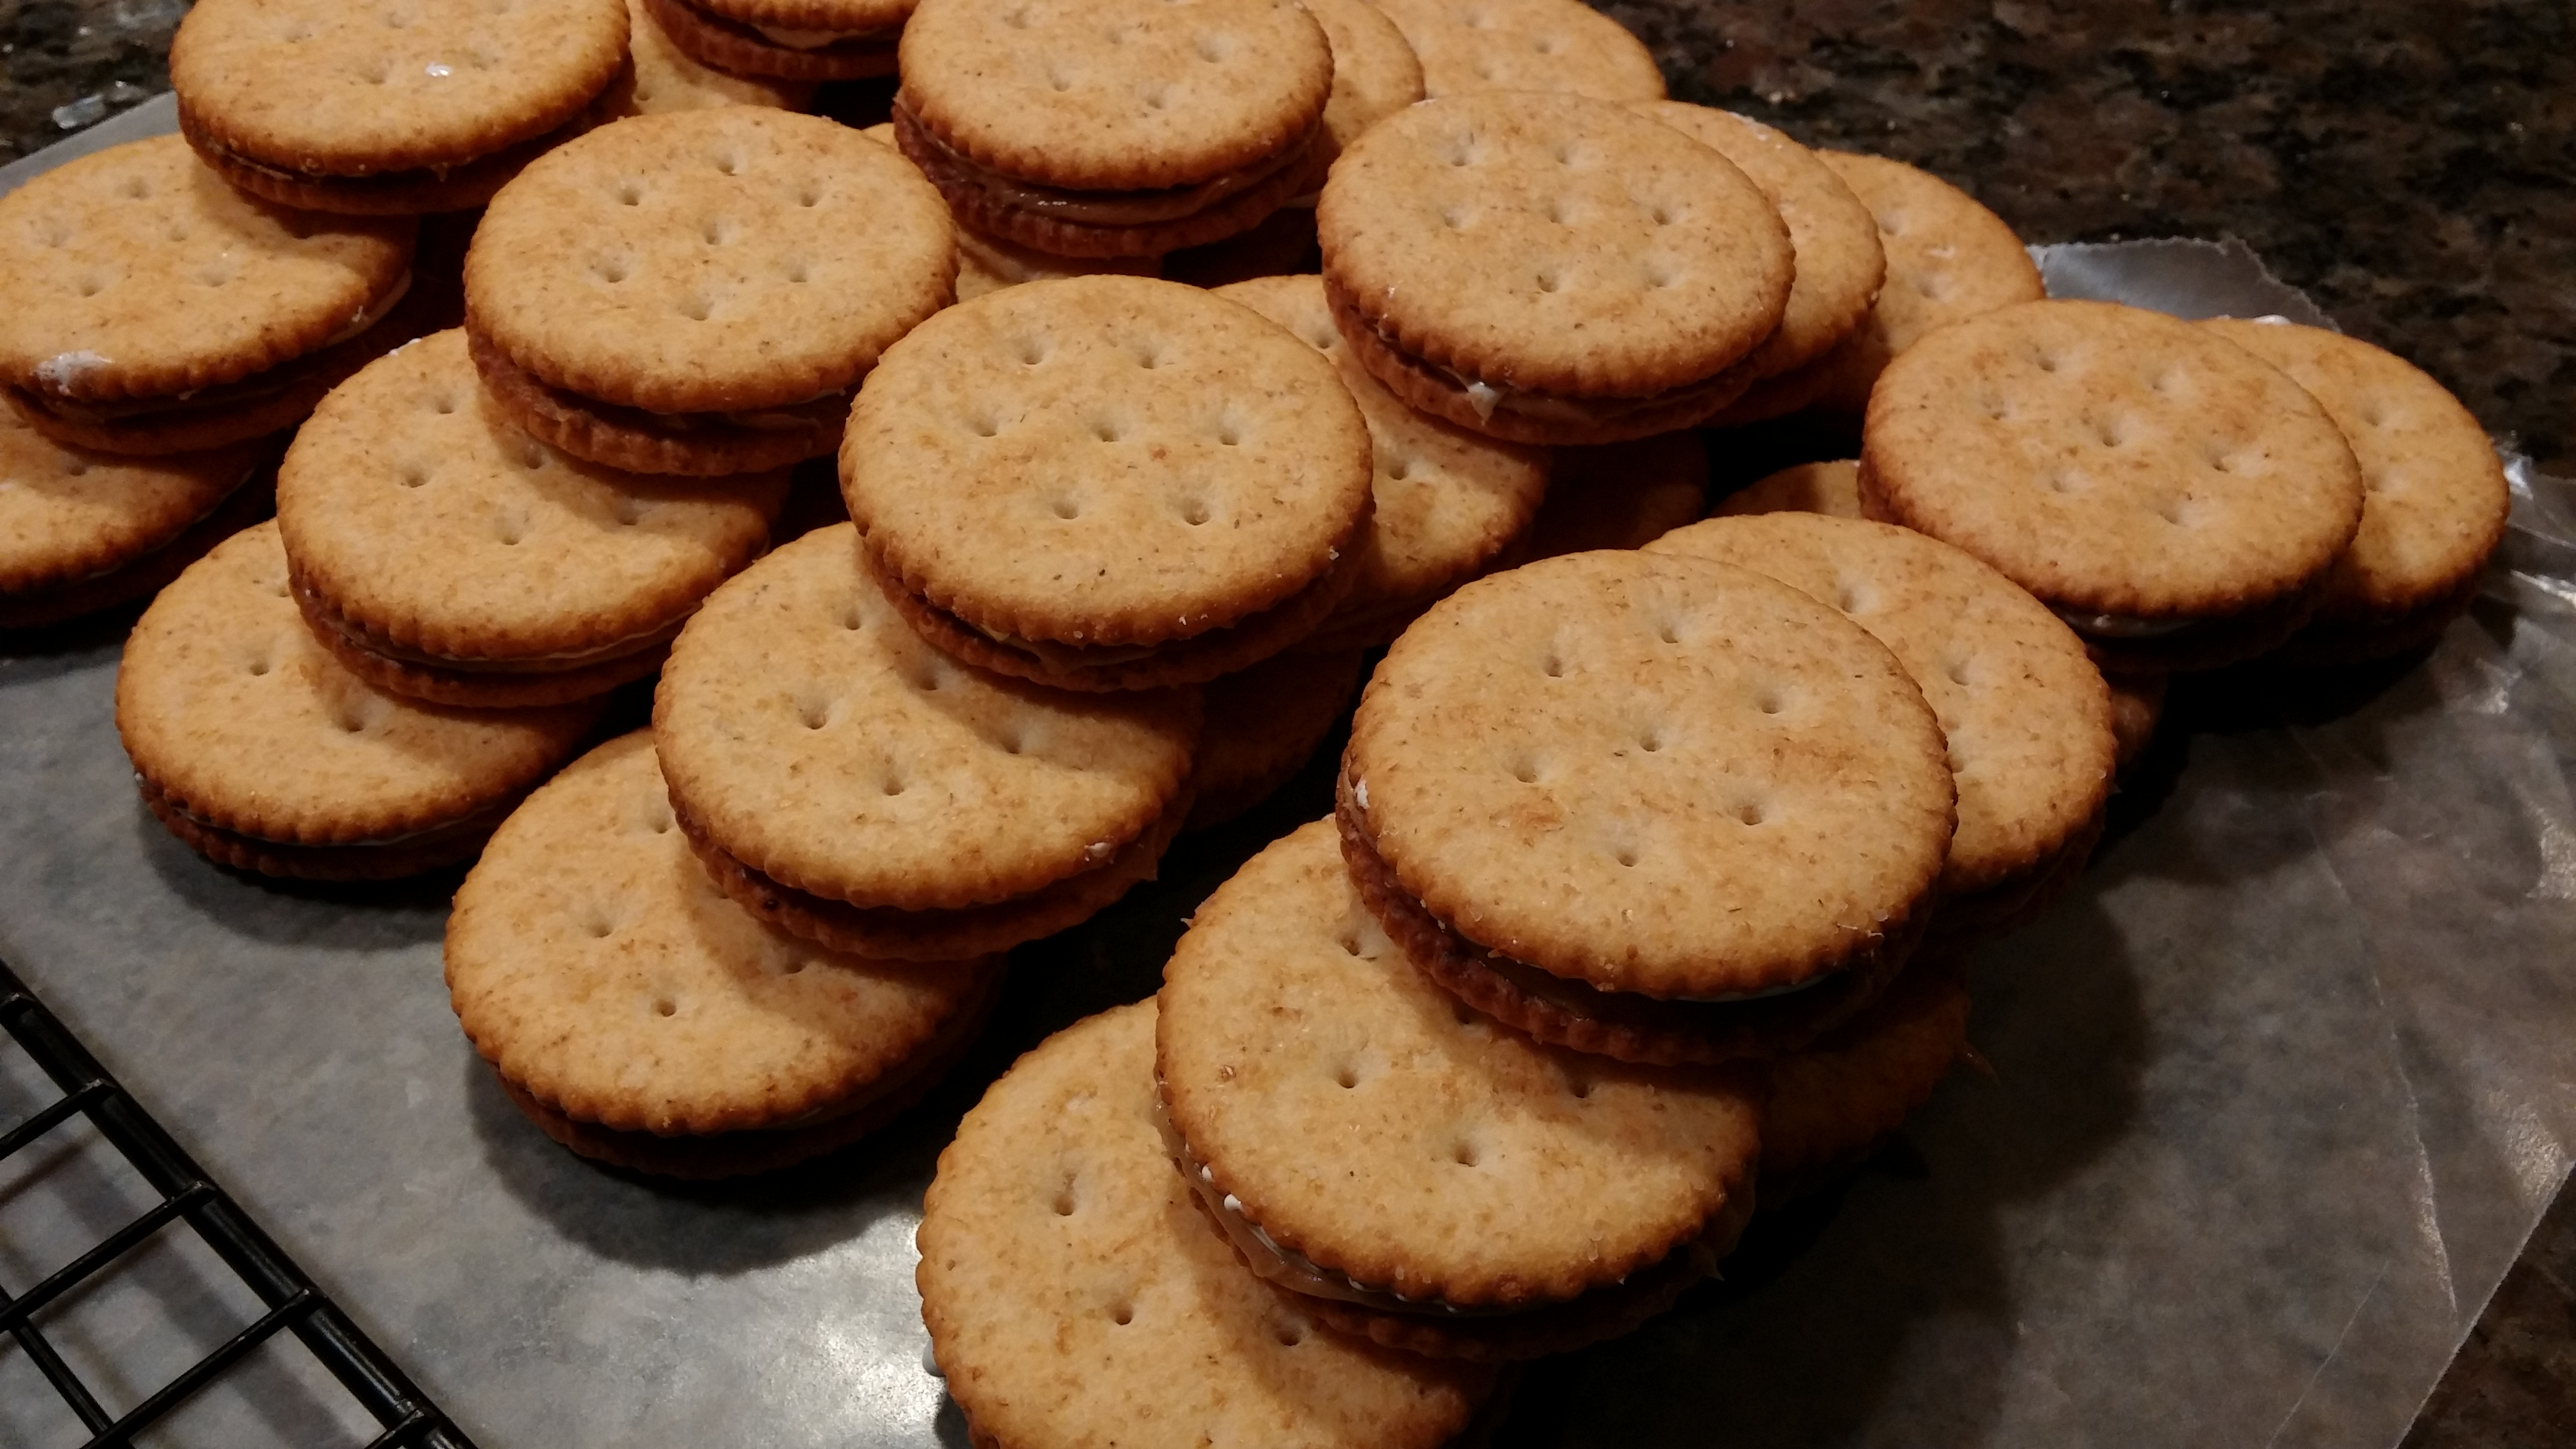 Picture of Assemble Cookies